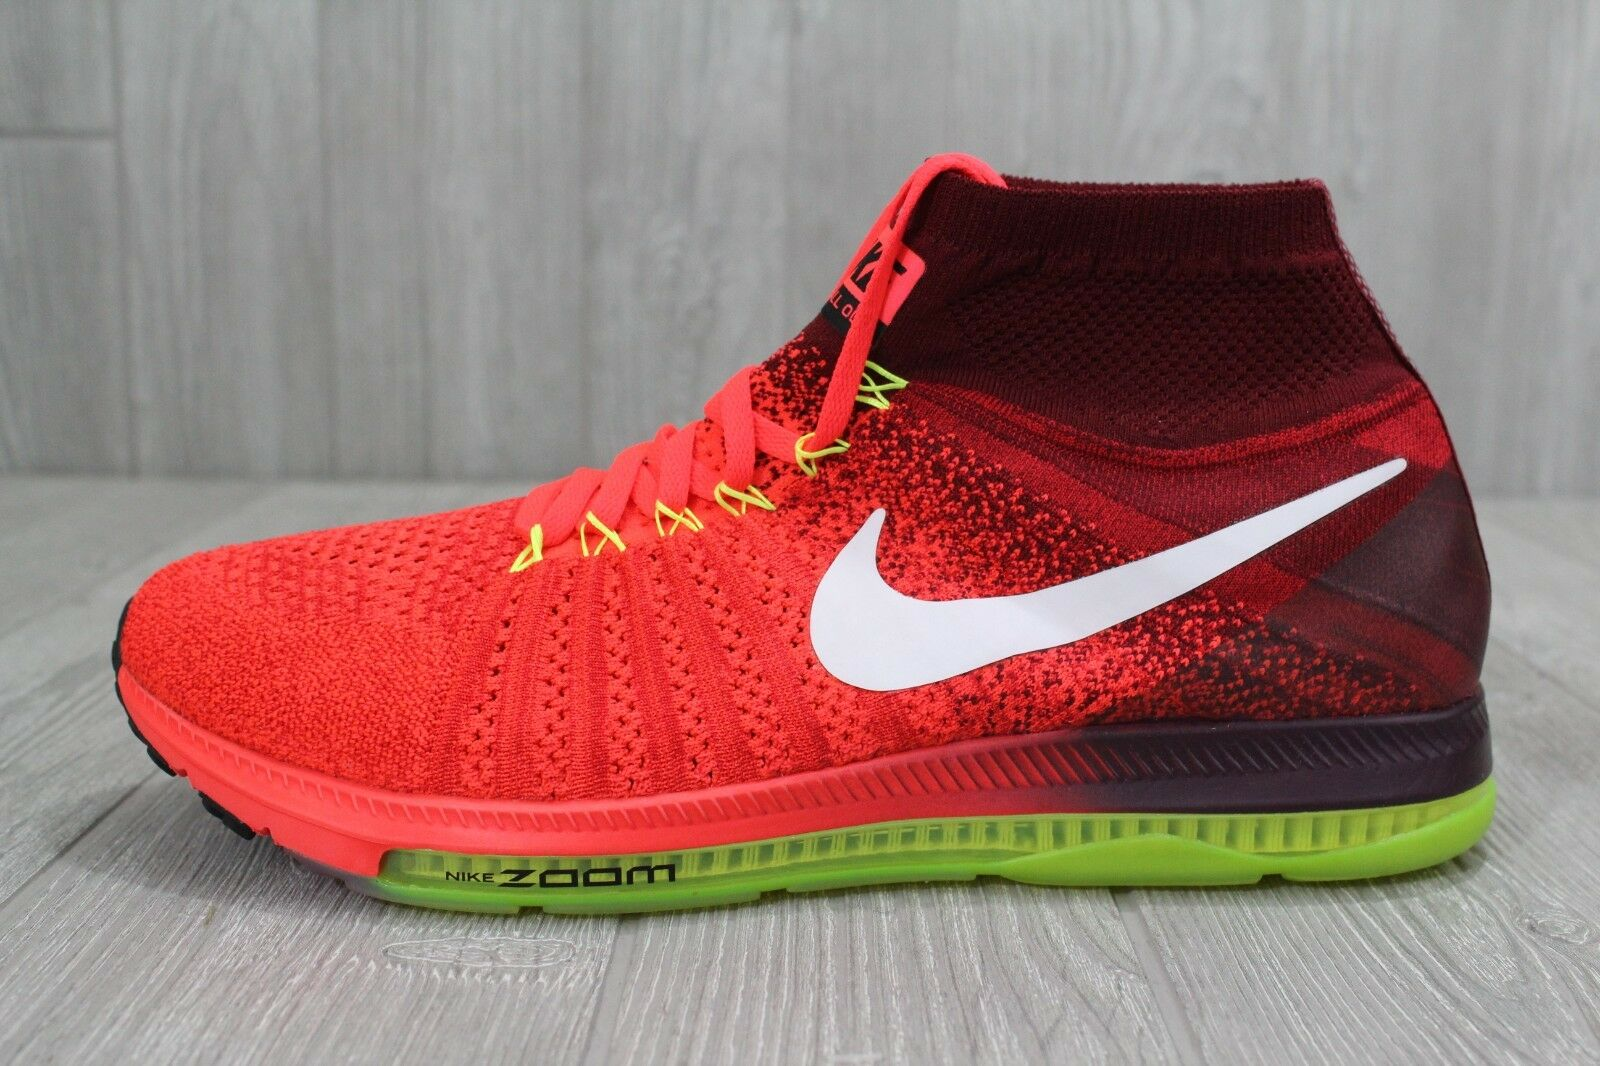 26 New Mens Nike Zoom All Out Flyknit Red/White/Volt Shoes Sz 10 12 844134 616 best-selling model of the brand